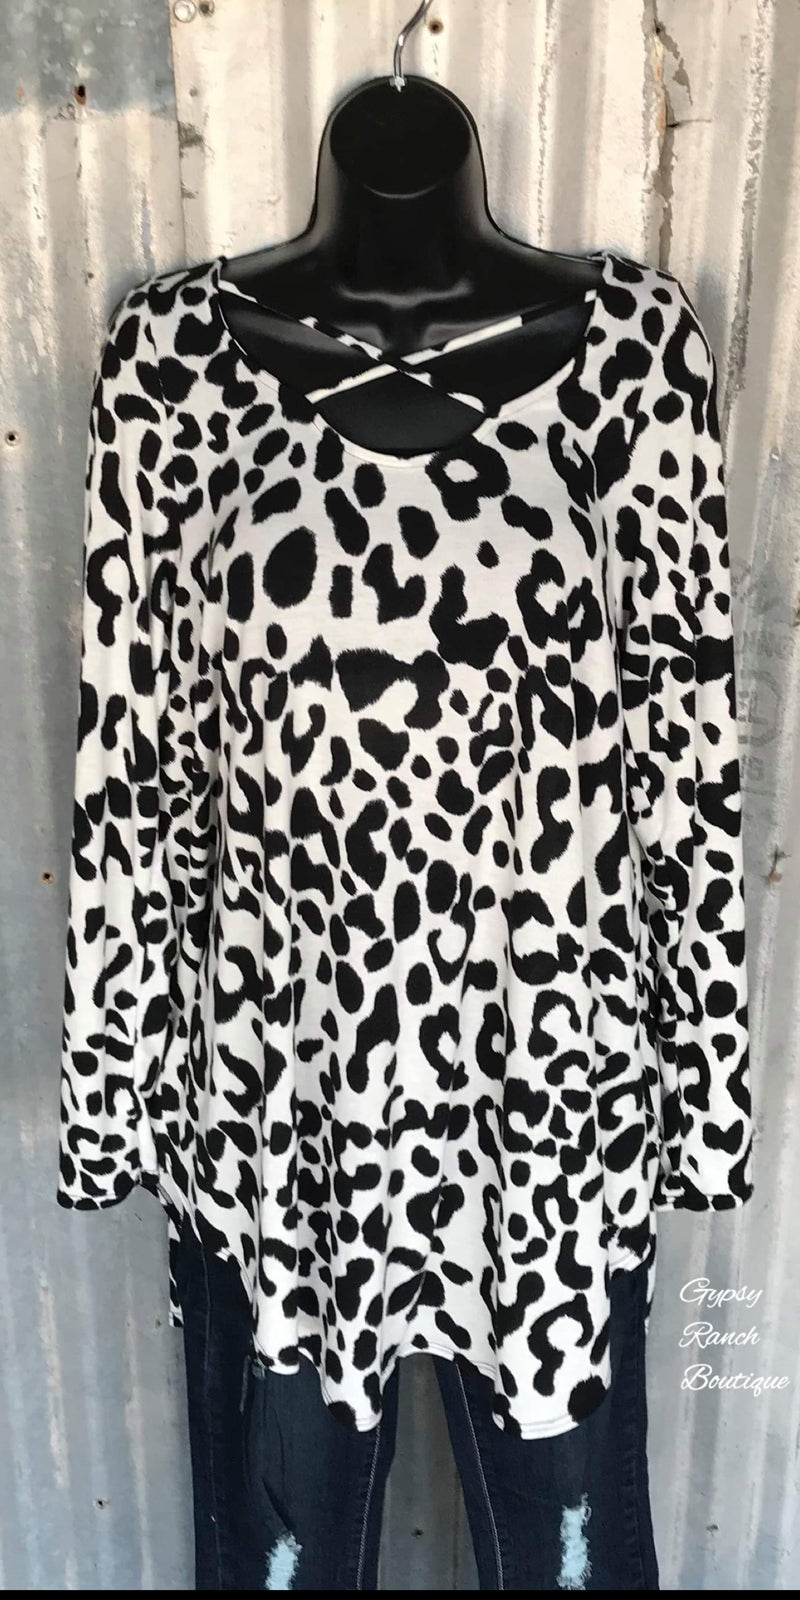 Late Night Snow Leopard Criss Cross Top - Also in Plus Size